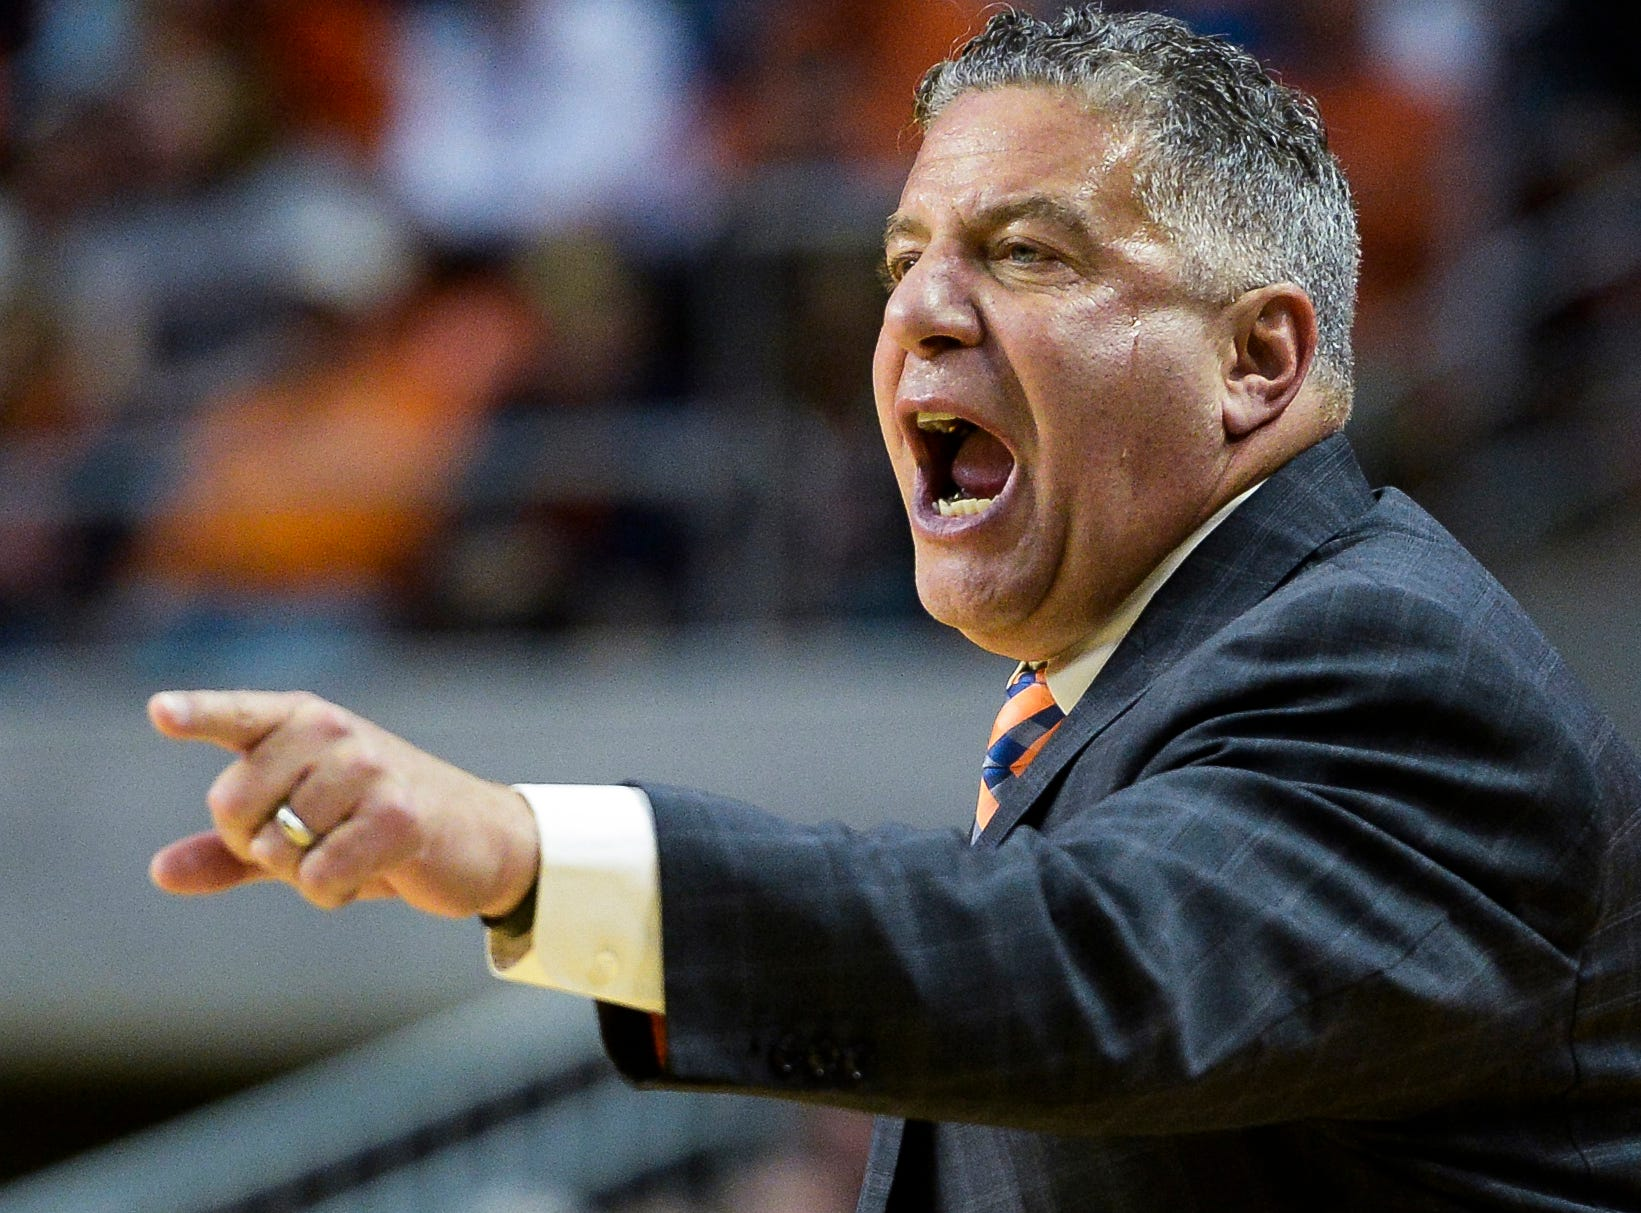 Nov 9, 2018; Auburn, AL, USA; Auburn Tigers head coach Bruce Pearl talks with the team during the first half against the Washington Huskies at Auburn Arena. Mandatory Credit: Julie Bennett-USA TODAY Sports